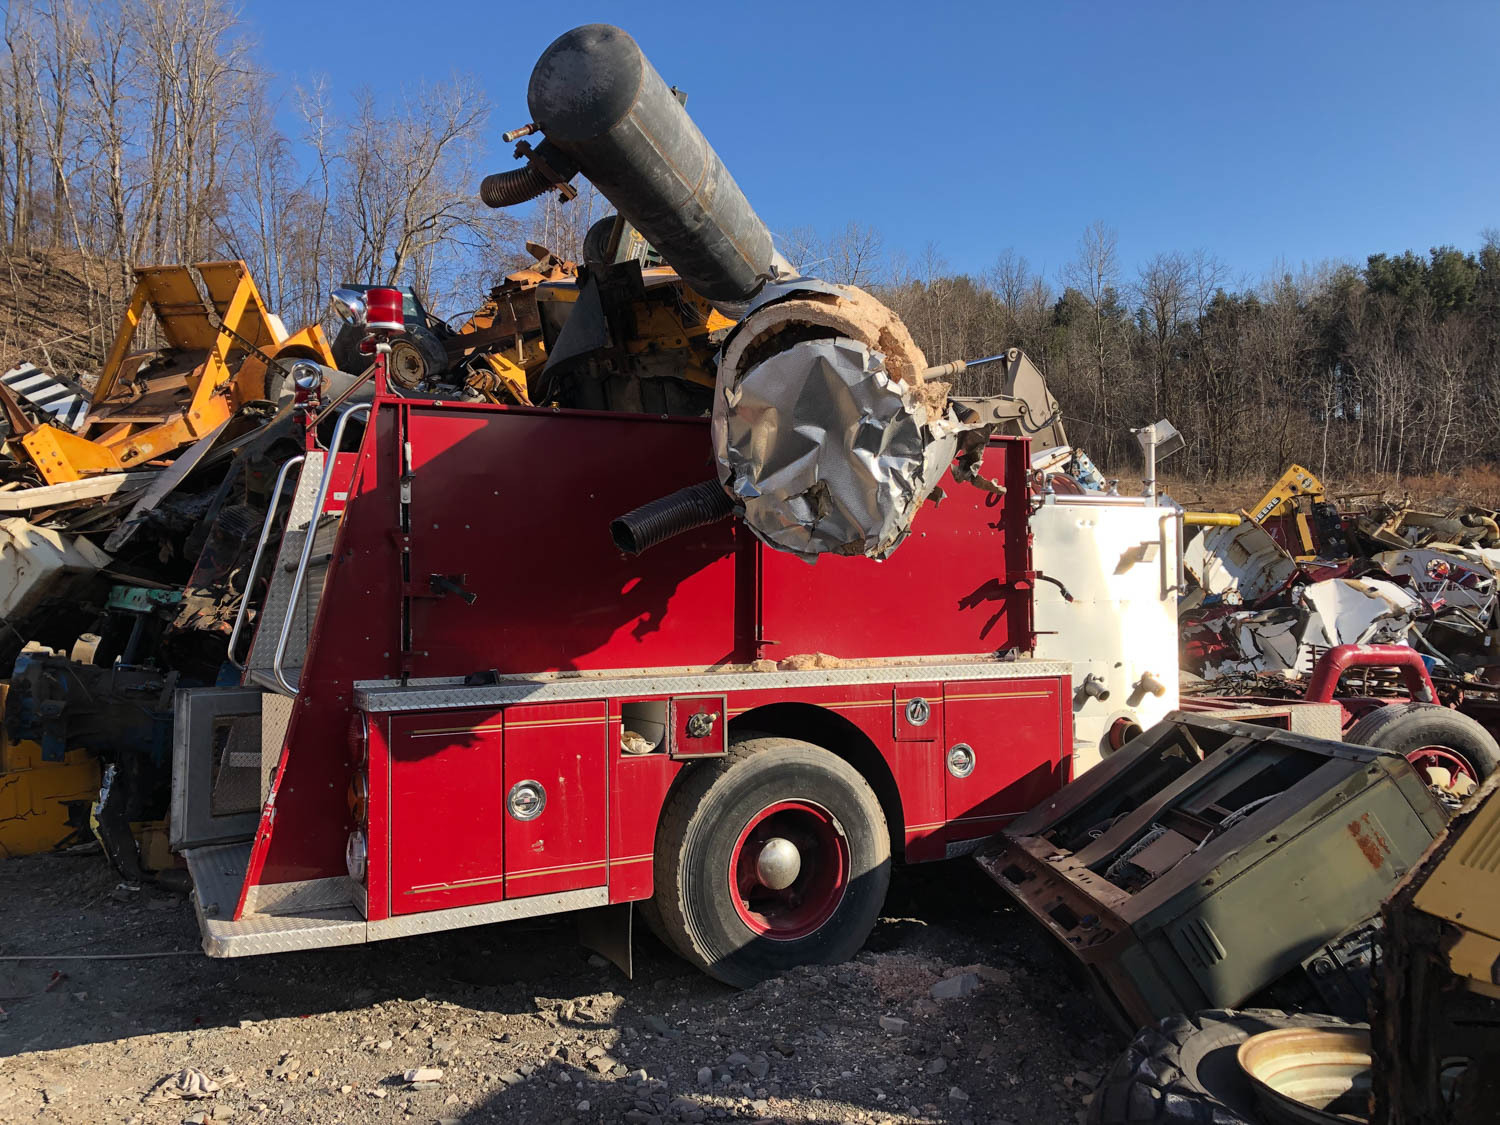 remnants of a retired fire truck